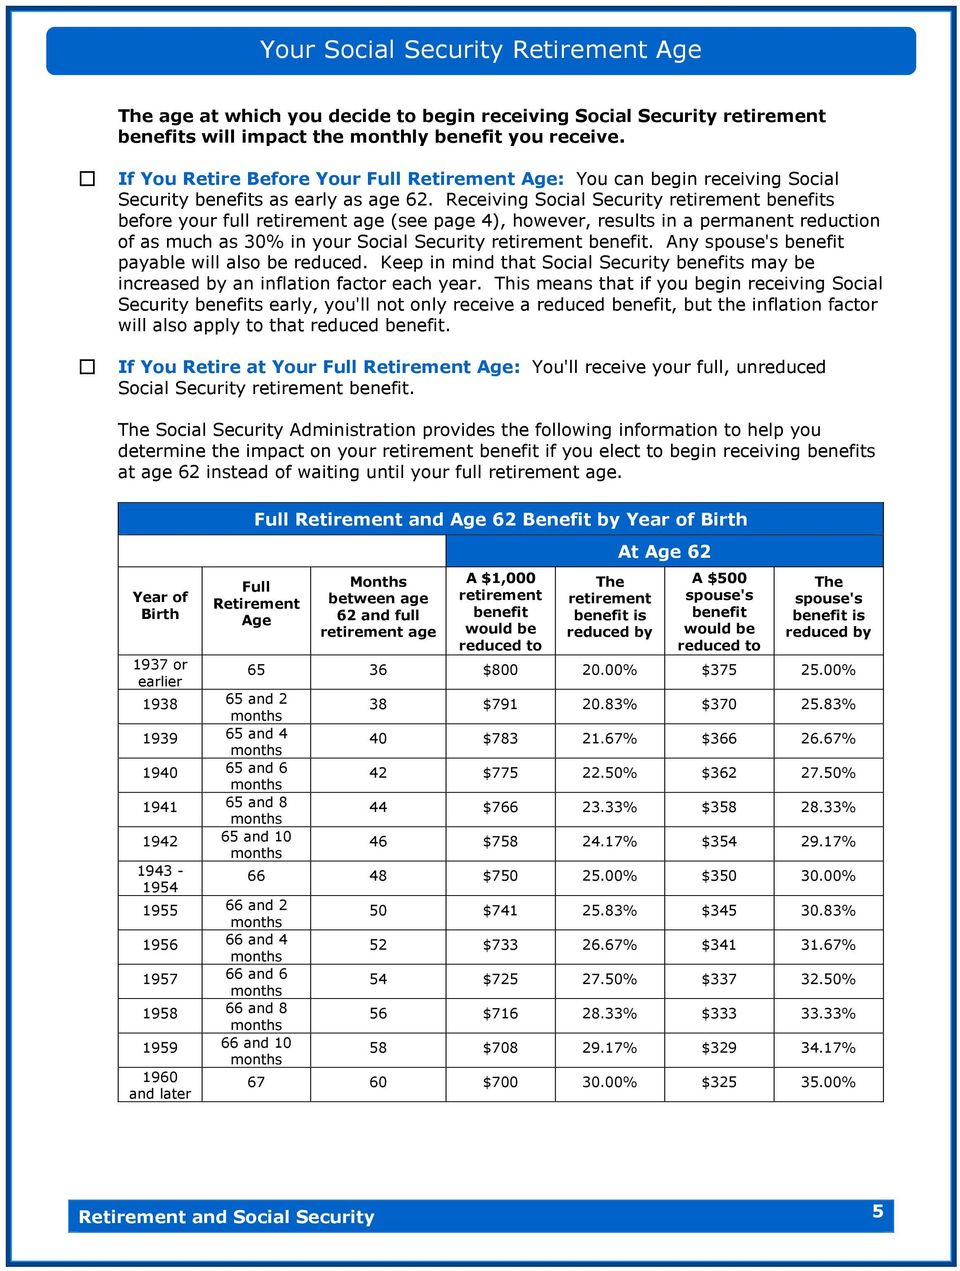 Receiving Social Security retirement benefits before your full retirement age (see page 4), however, results in a permanent reduction of as much as 30% in your Social Security retirement benefit.